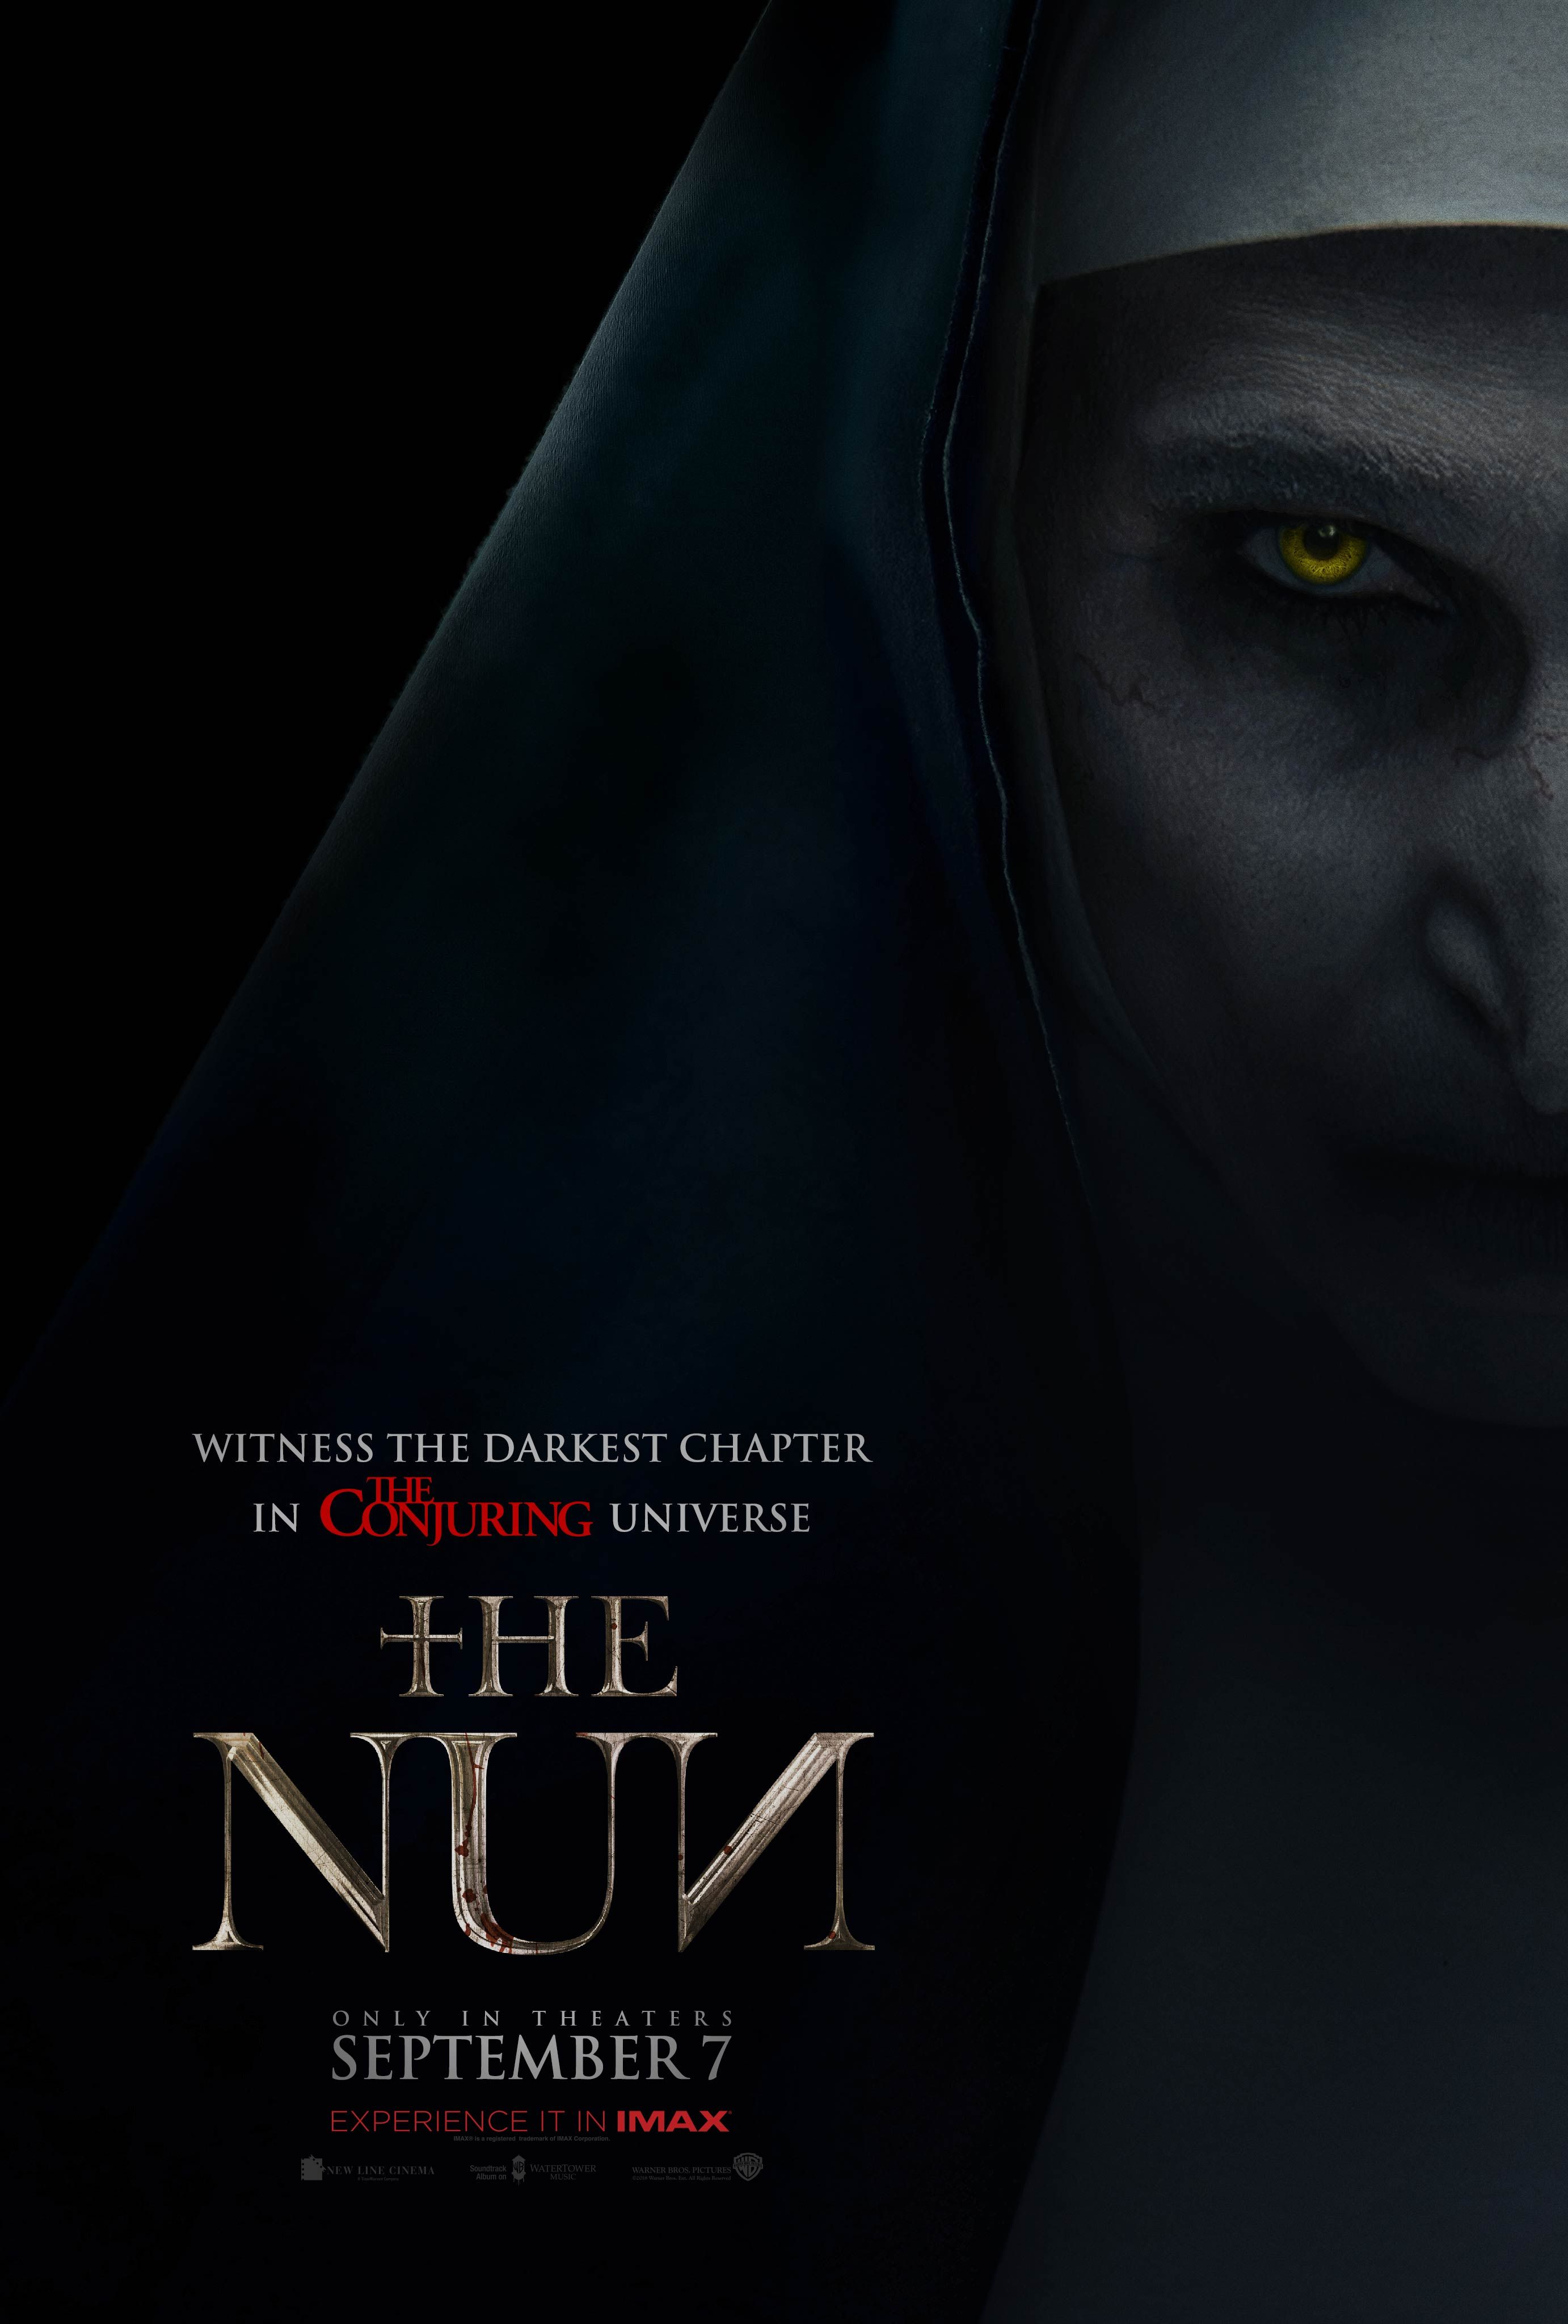 THE NUN In theaters September 7, 2018 (With images